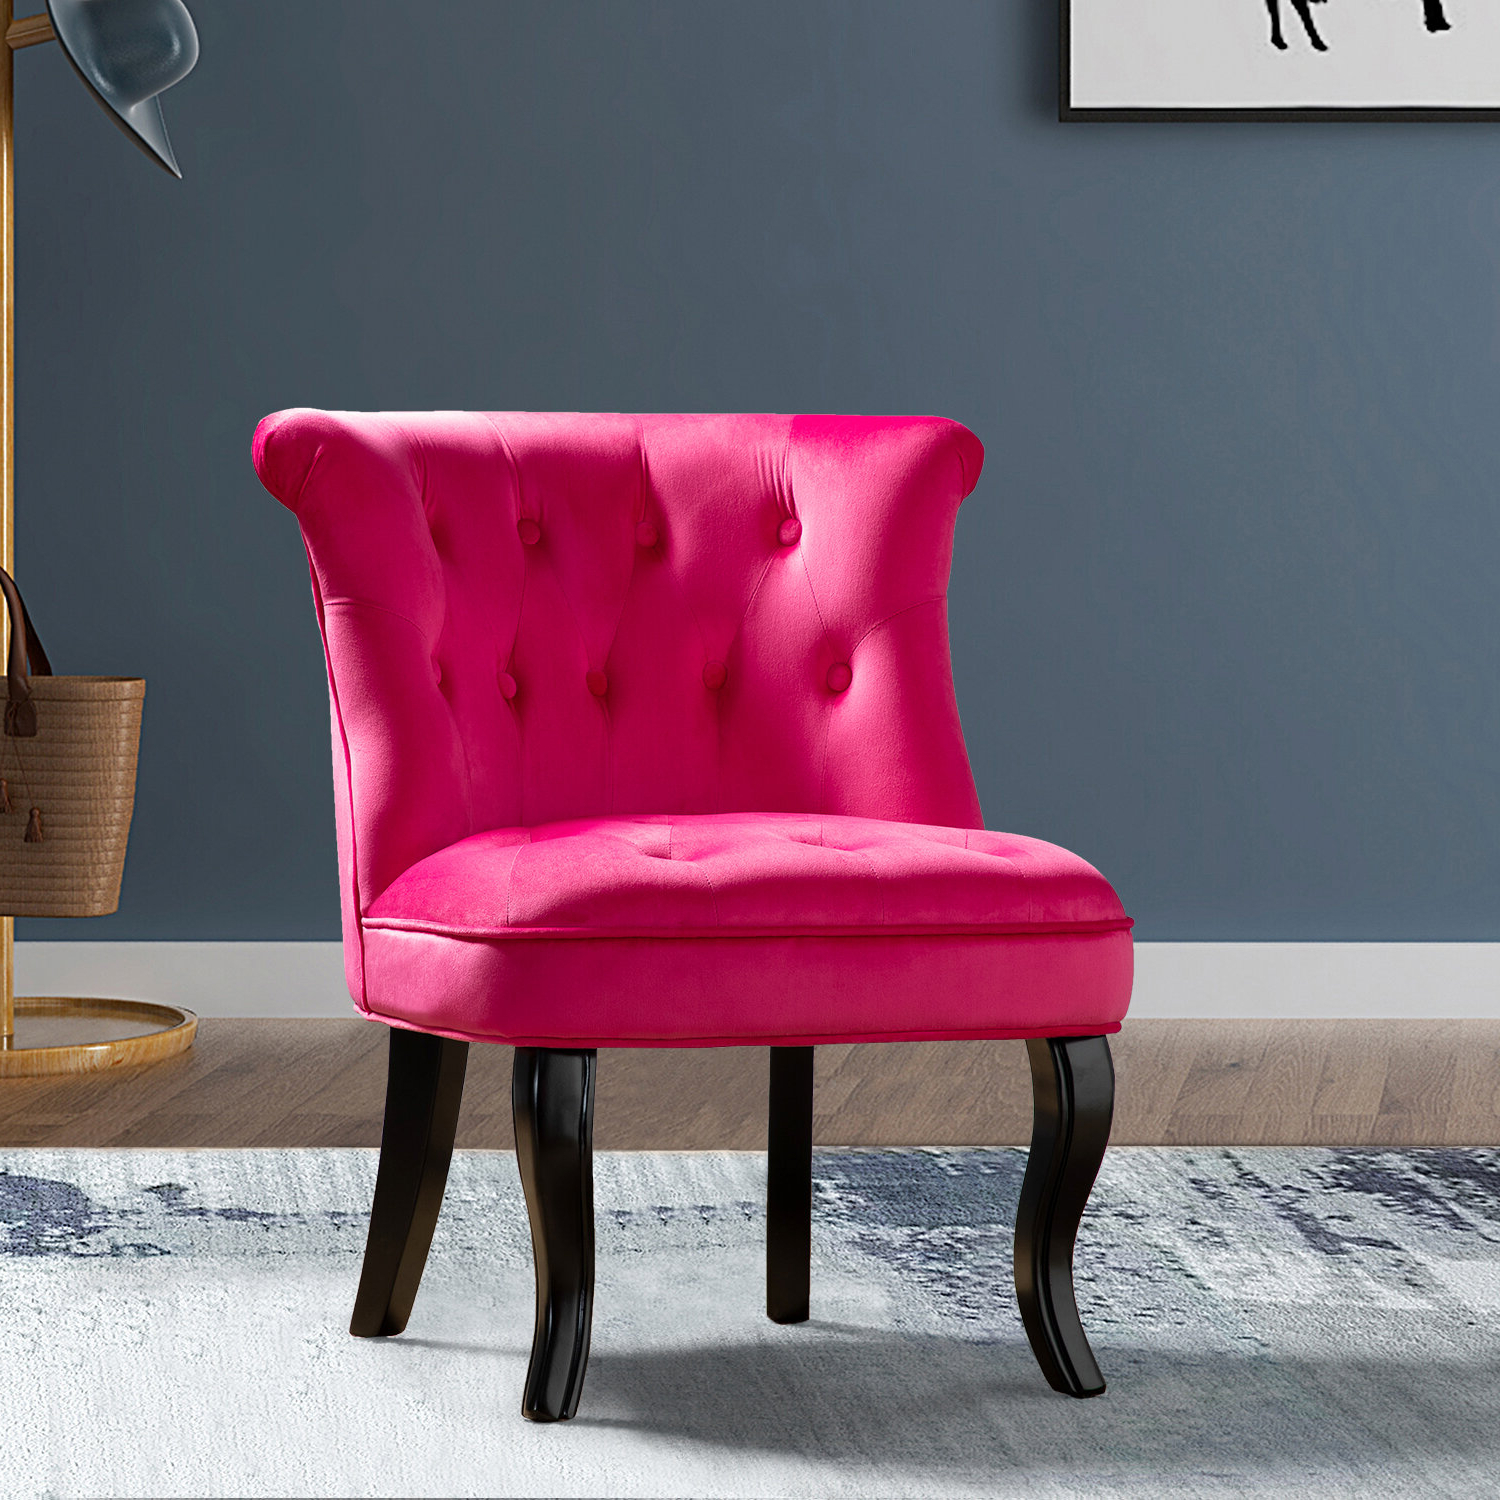 Maubara Tufted Wingback Chairs For Well Known Maubara Lewisville Wingback Chair (View 9 of 20)